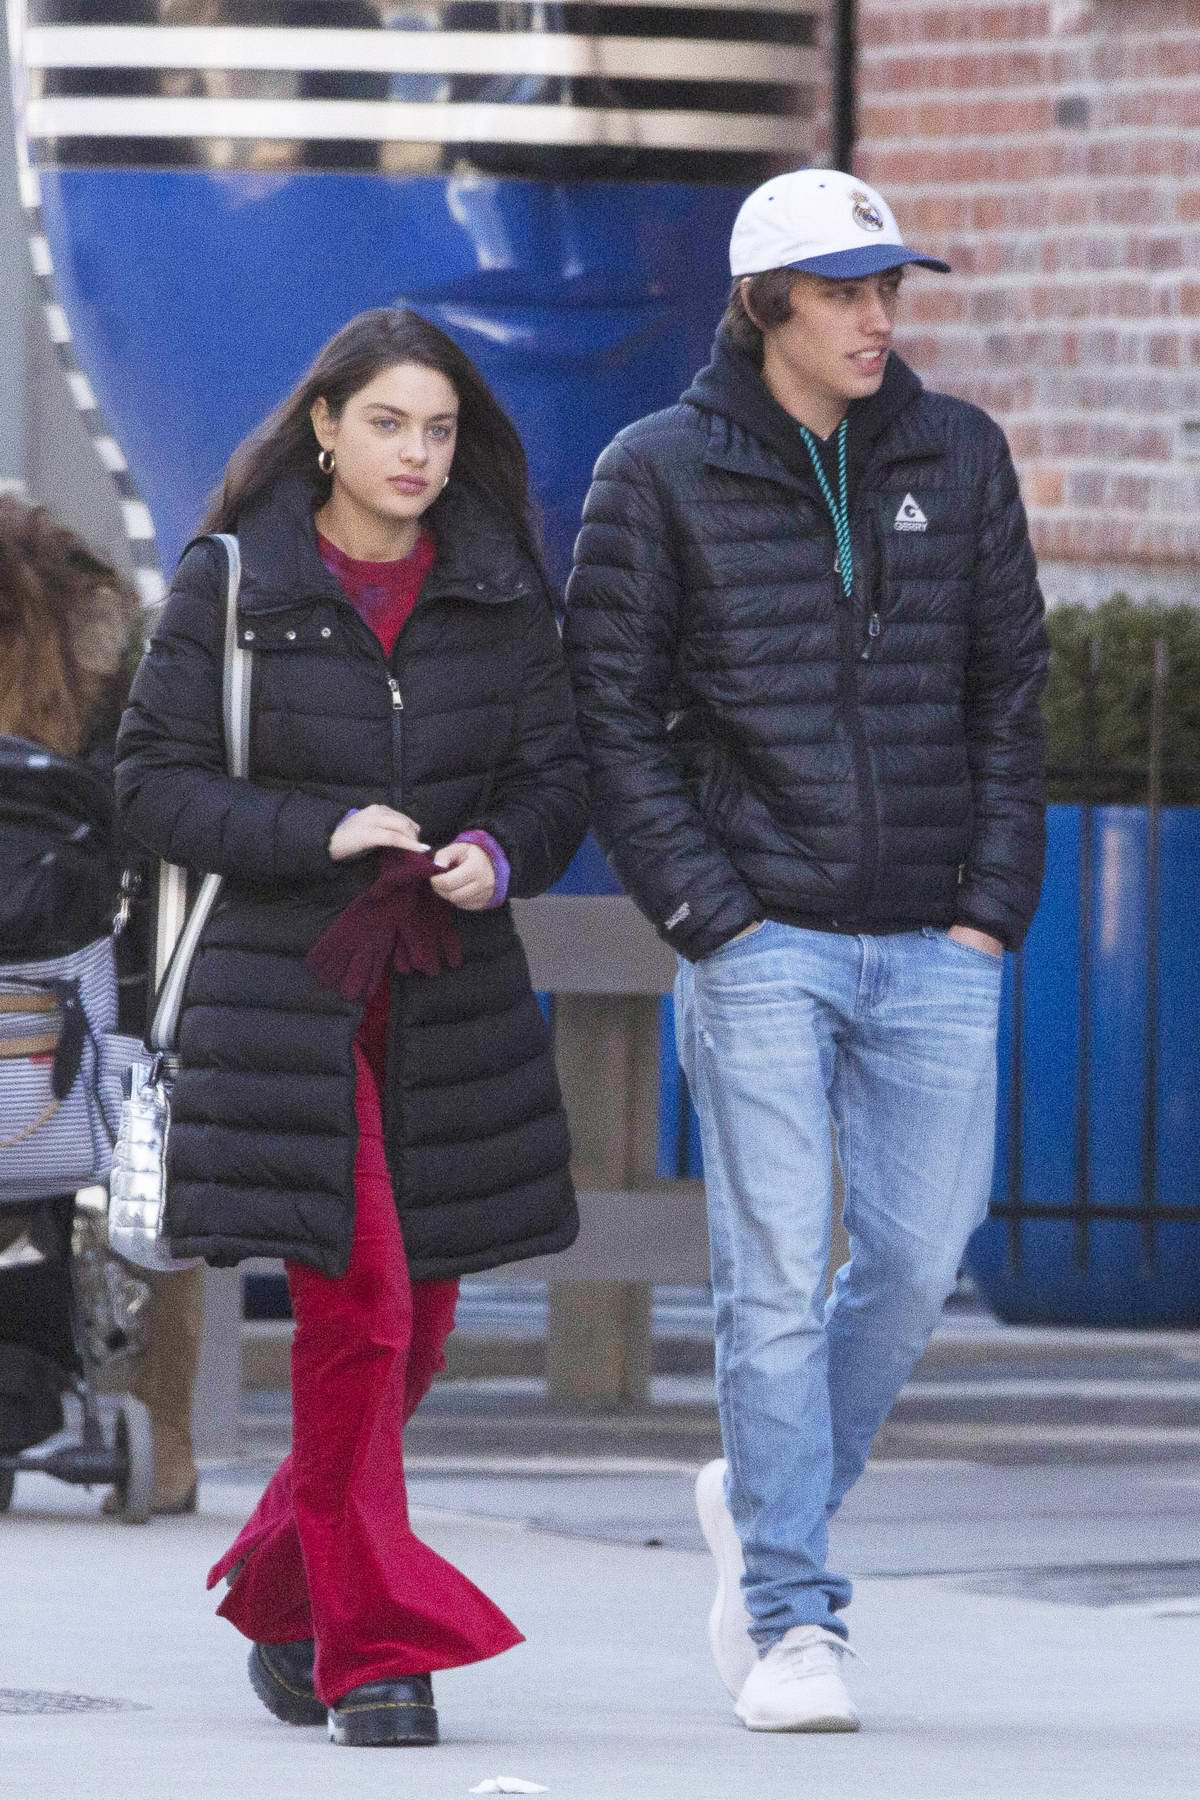 Odeya Rush steps out for a walk with Ryan Lee in Toronto, Canada